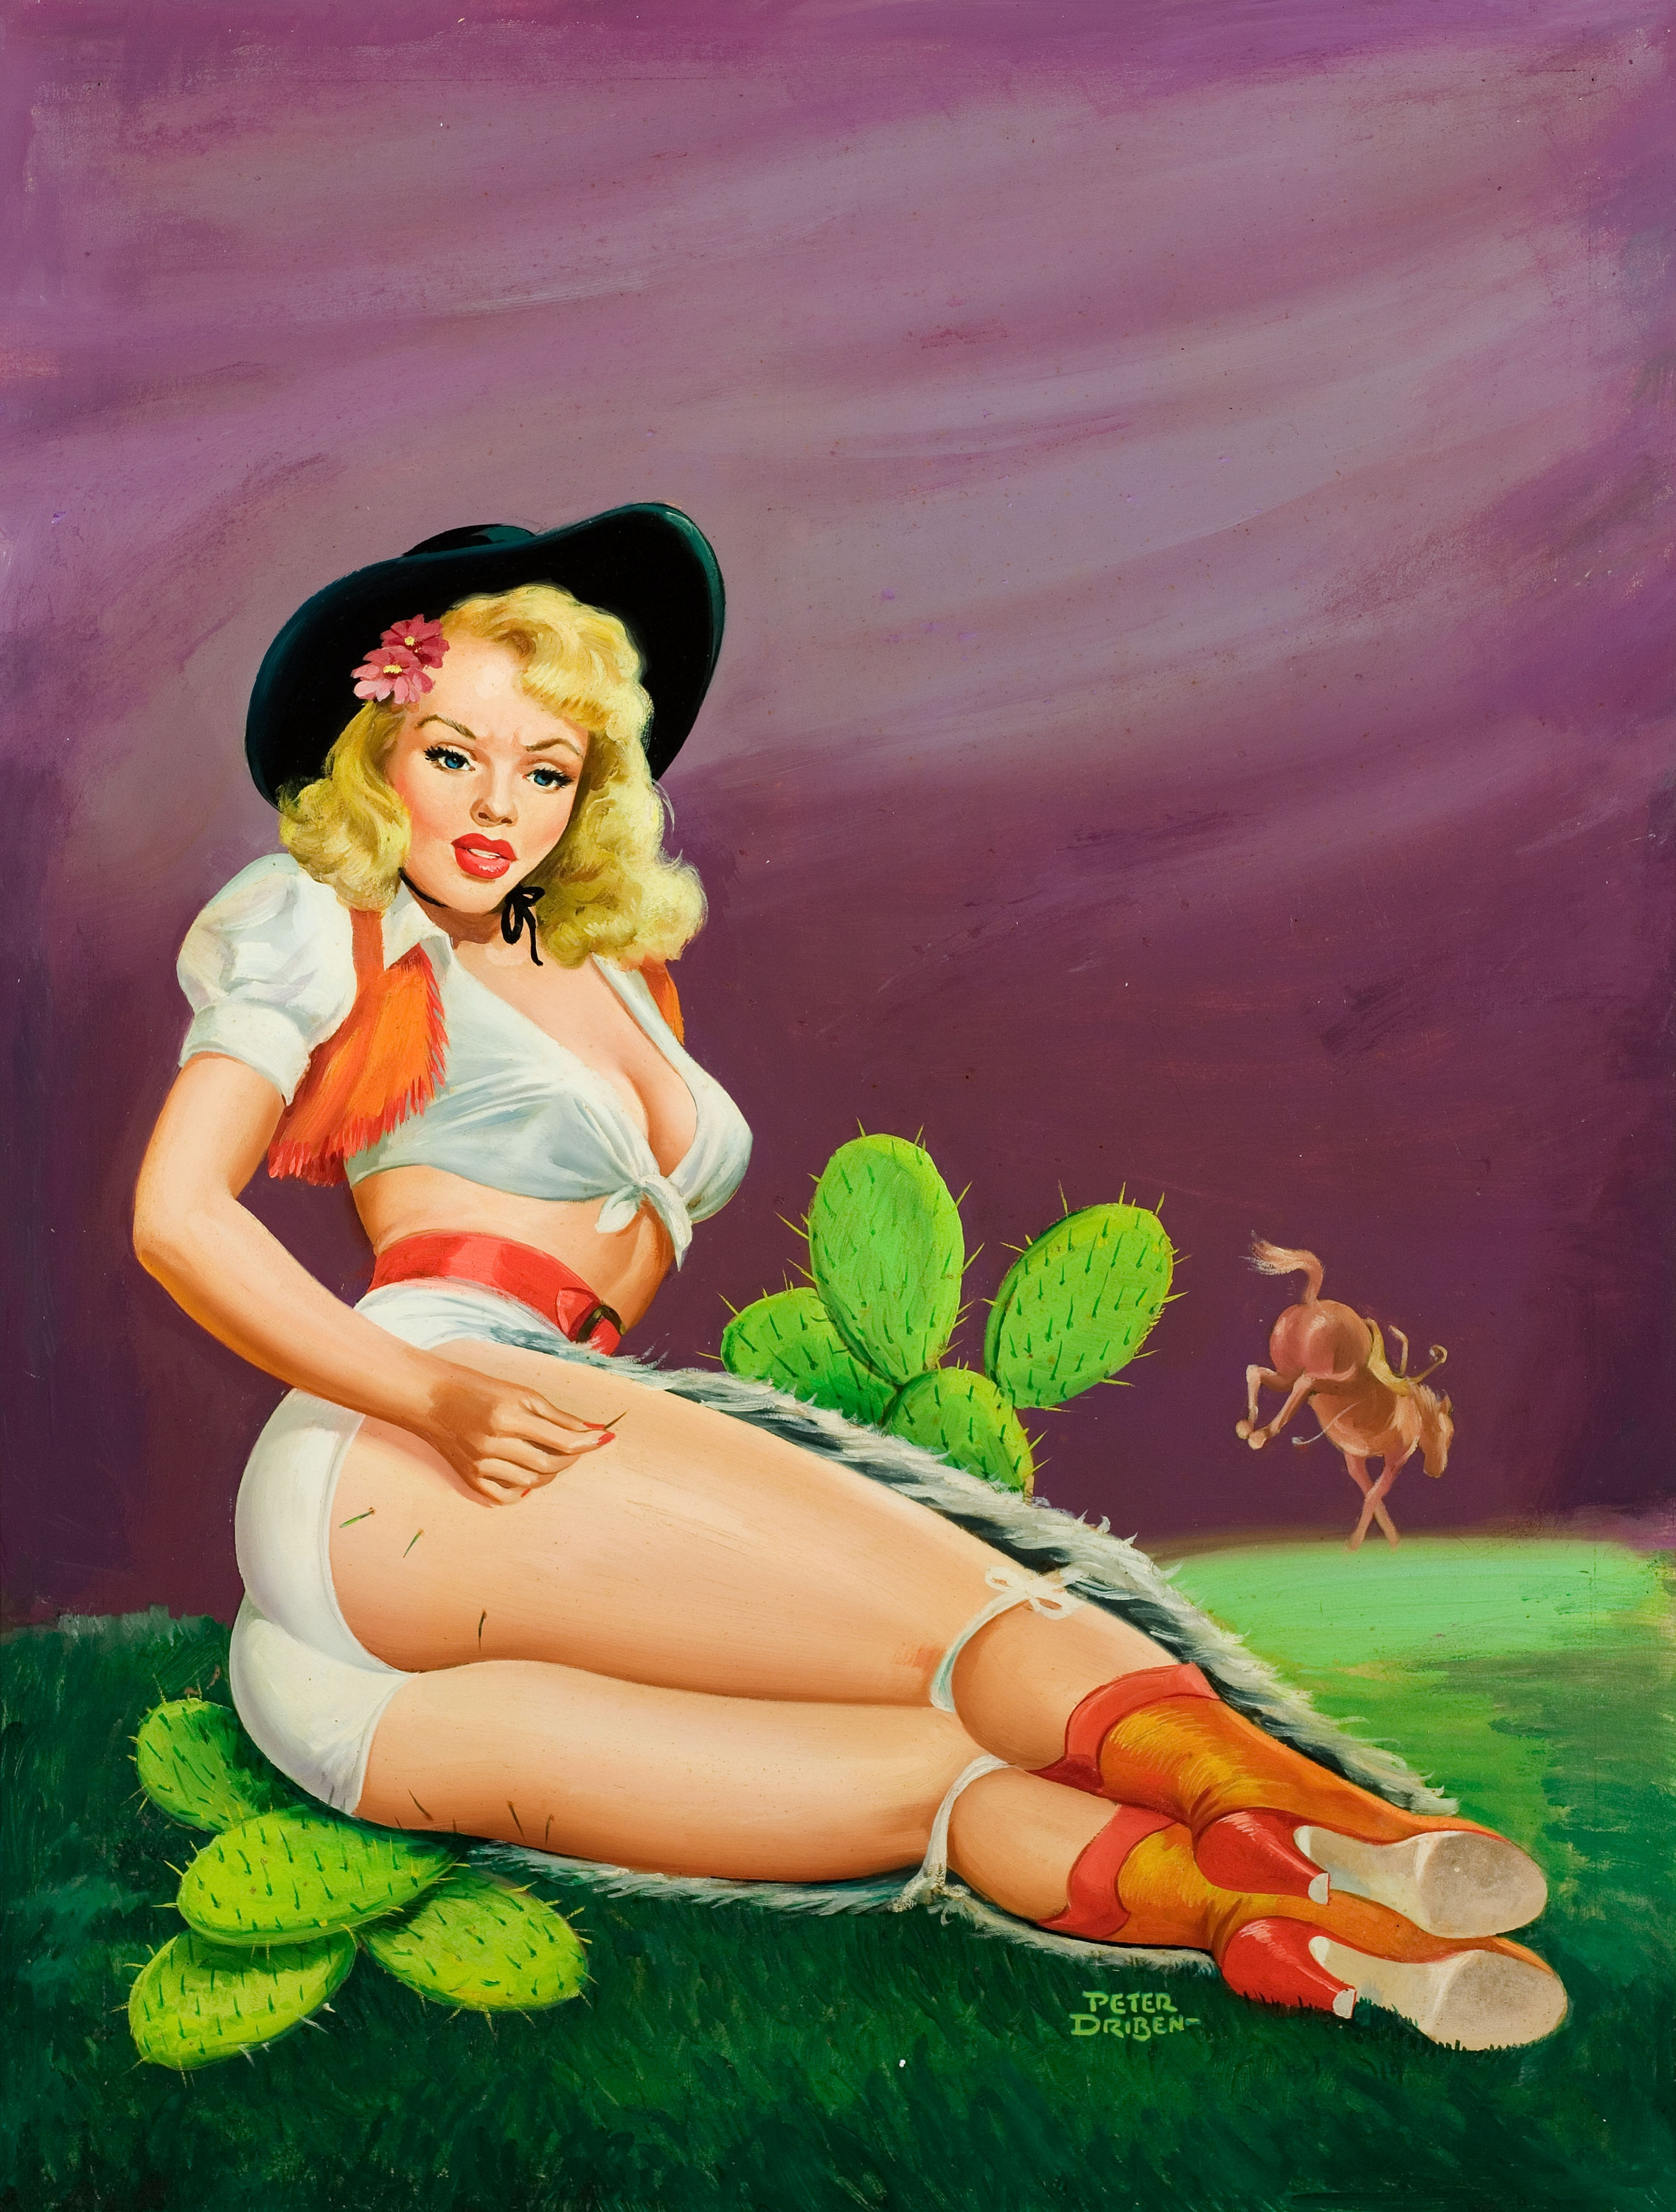 Peter Driben Pin-Up Art 003